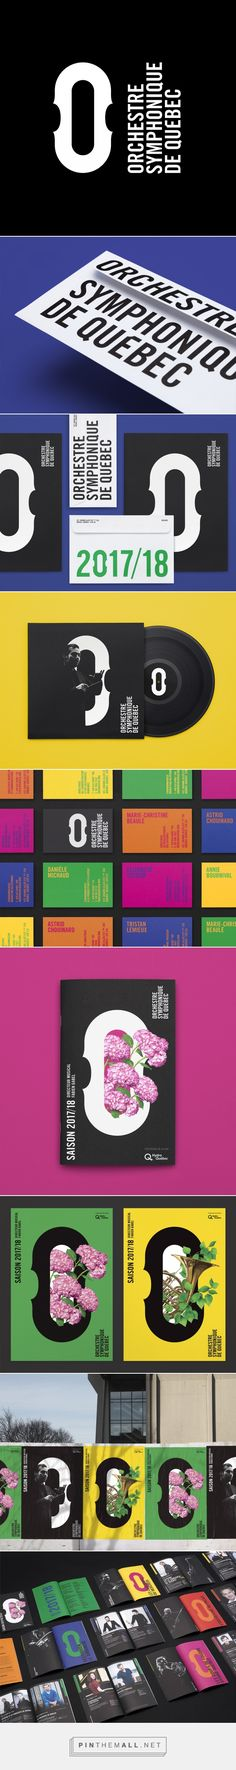 Brand New: New Logo and Identity for Orchestre Symphonique de Québec by lg2... - a grouped images picture - Pin Them All